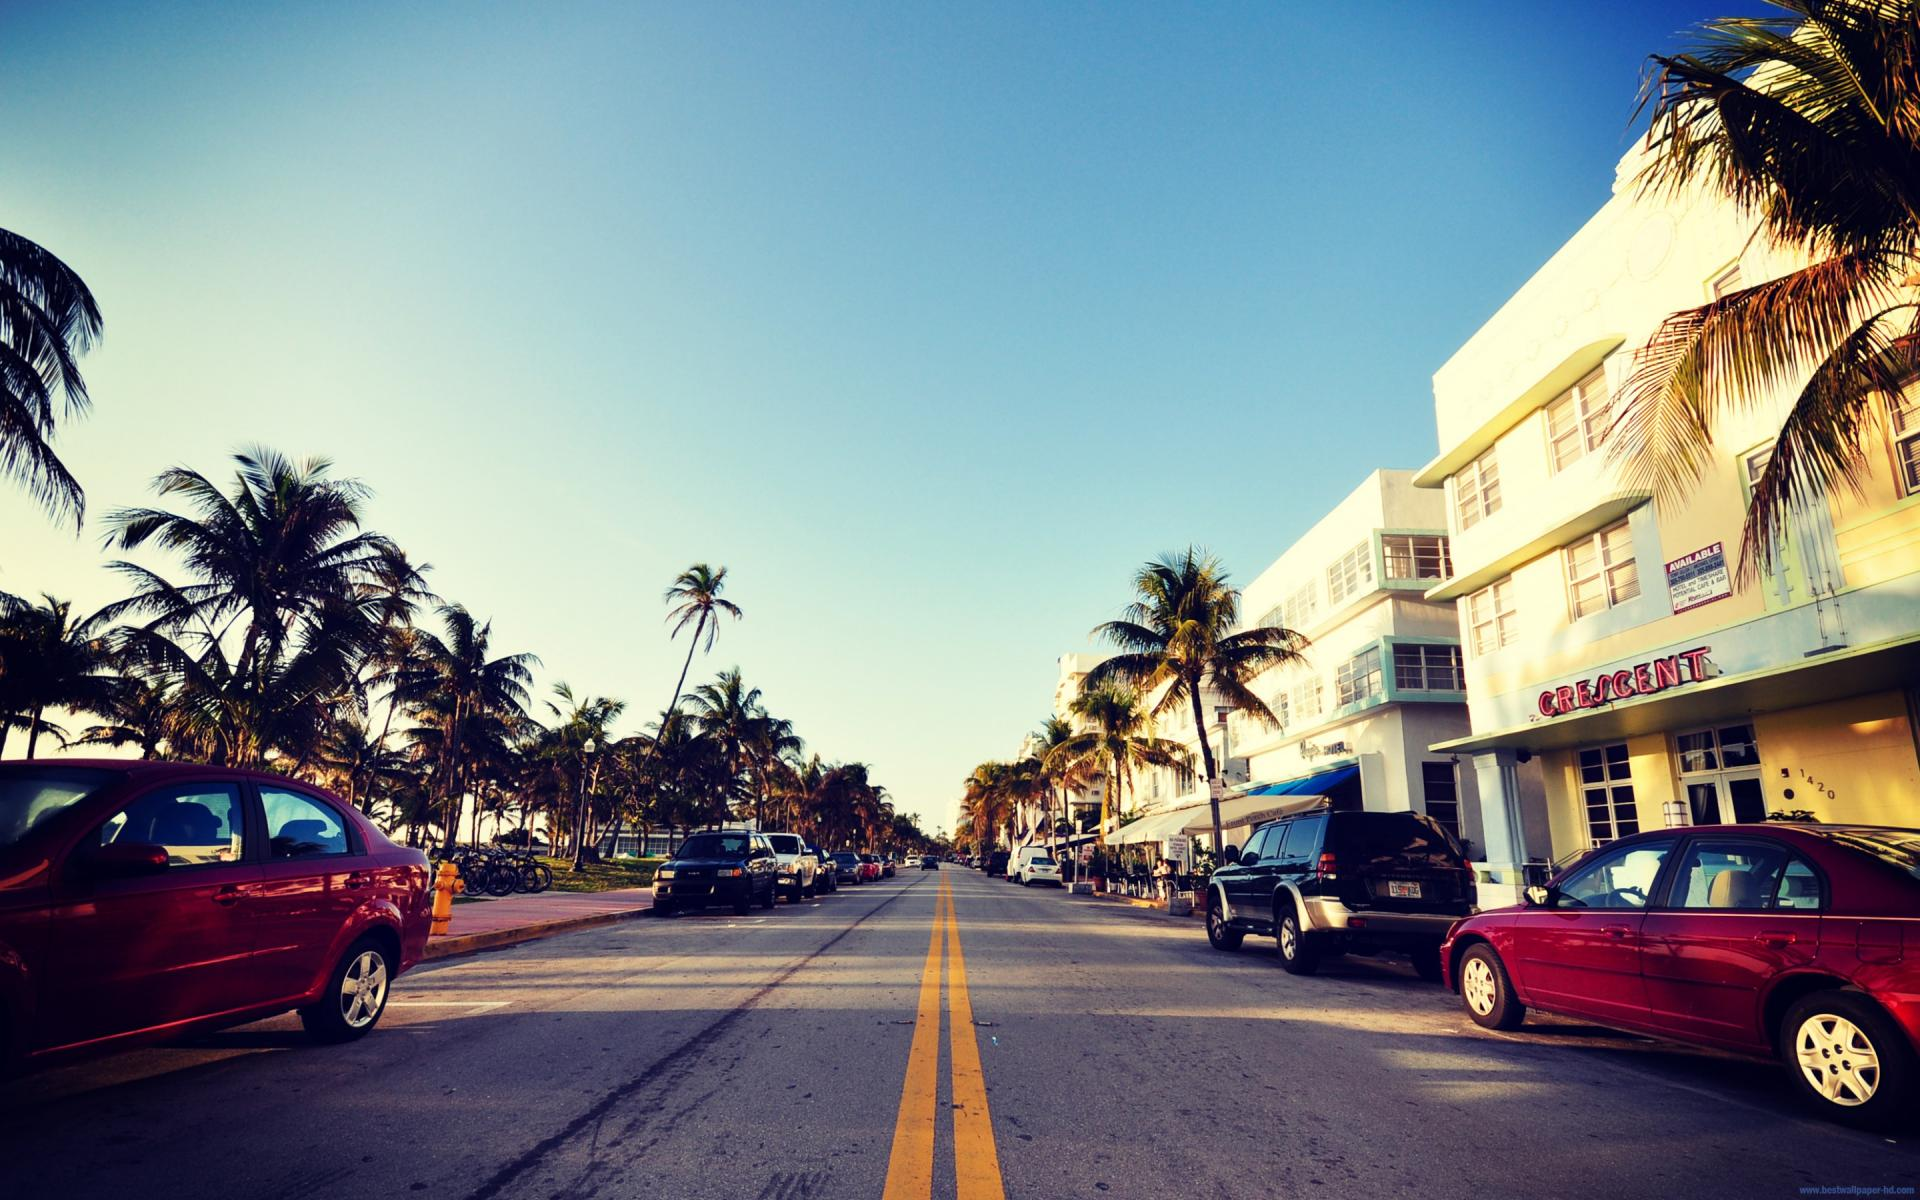 south-beach-florida-widescreen-high-resolution-wallpaper-image-for-desktop-background-free